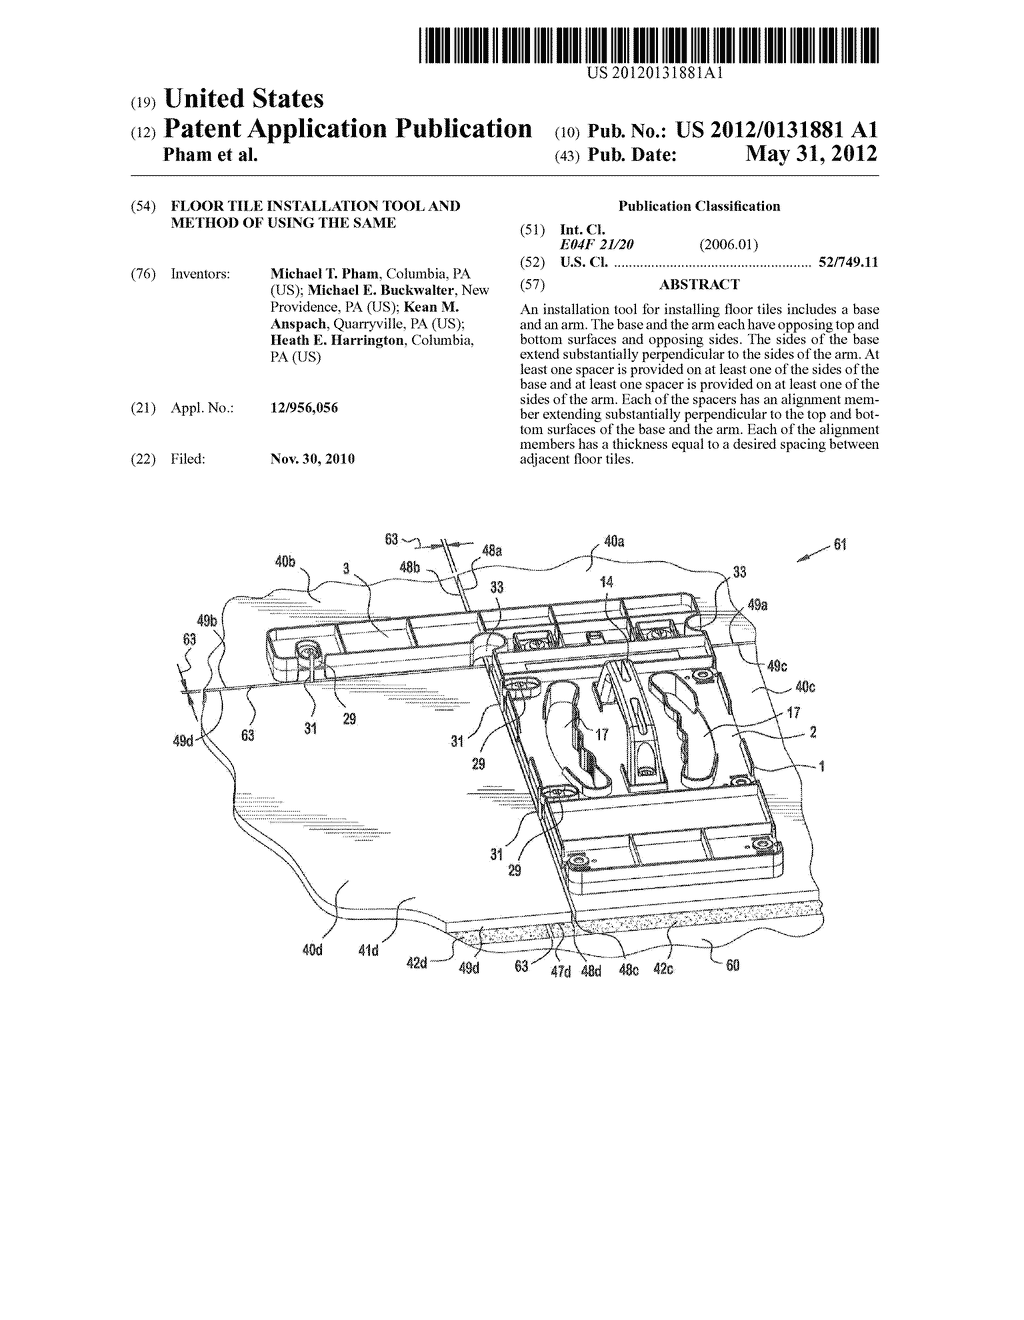 Floor tile installation tool and method of using the same - diagram, schematic, and image 01